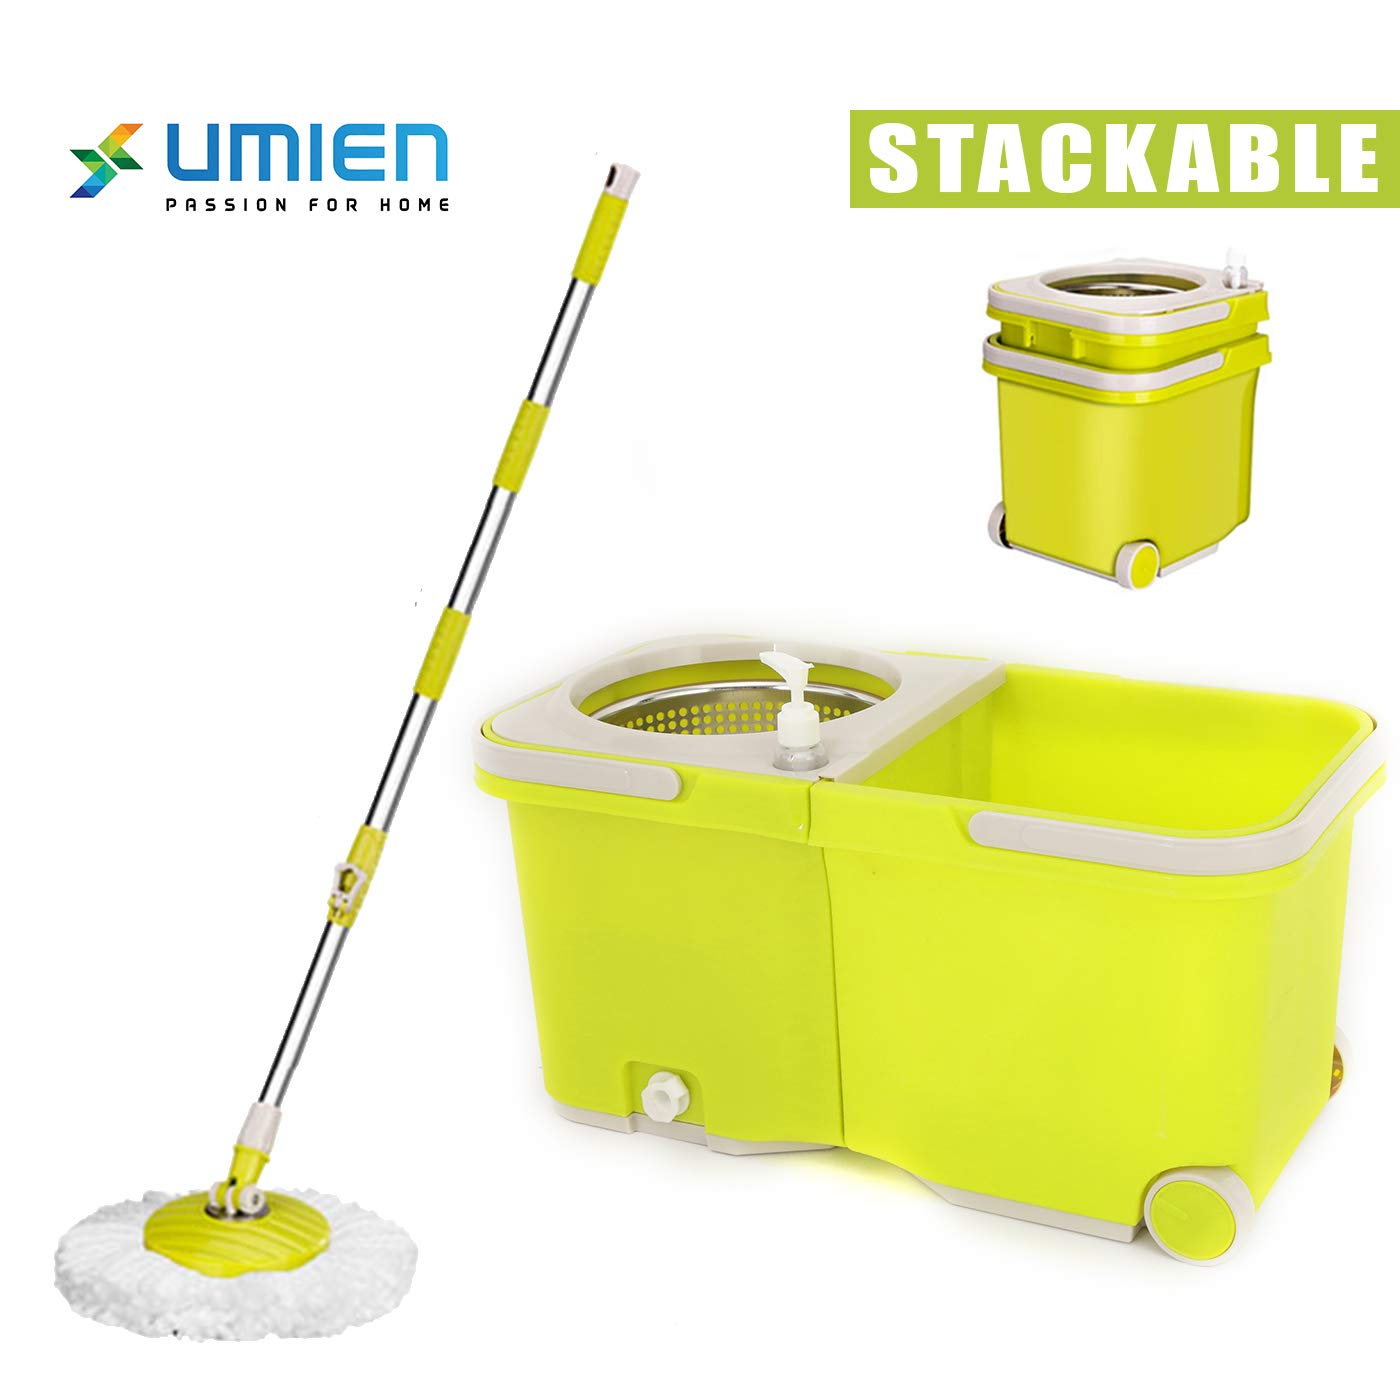 Umien Spin Mop and Bucket System - 360° Self Wringing Spinning Mop with Stackable Bucket On Wheels and 2 Machine Washable Microfiber Mop Heads - Easy to use and Store